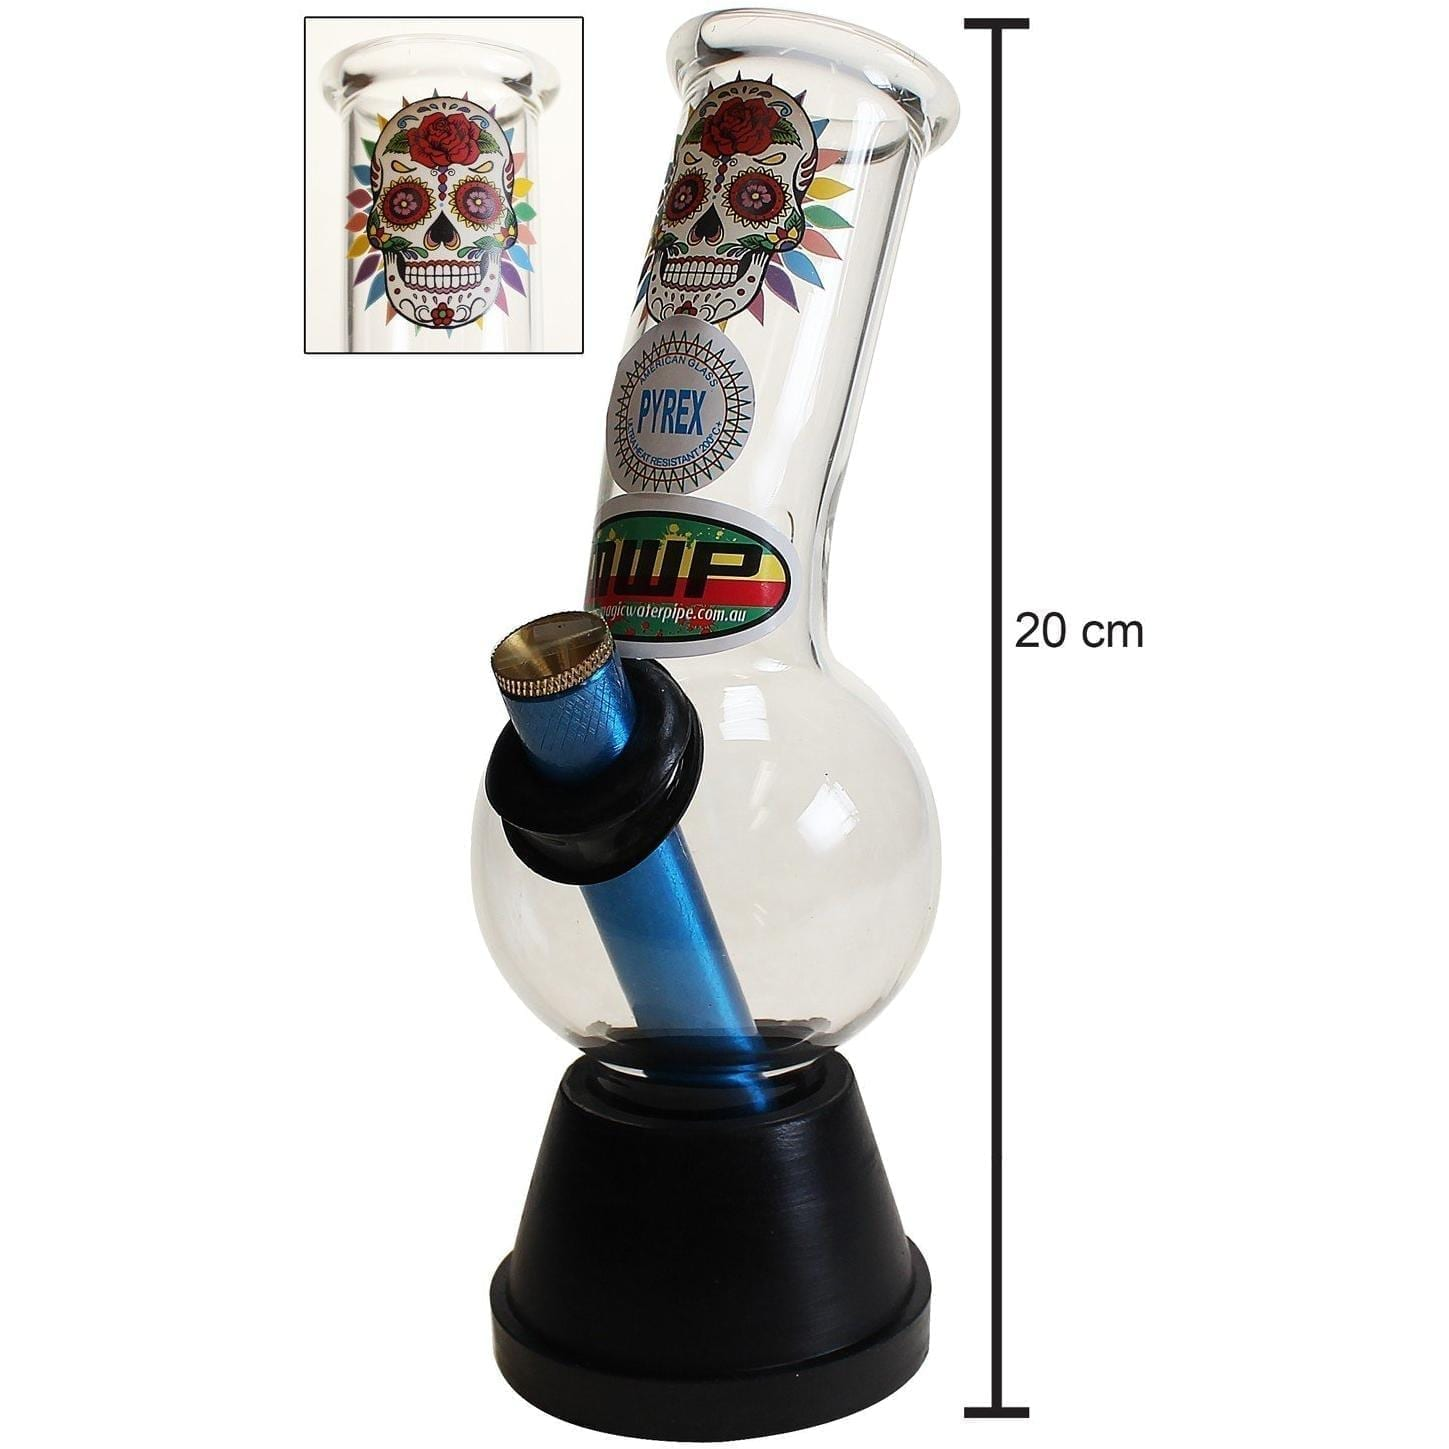 Candy Skull Bonza Waterpipe 20cm